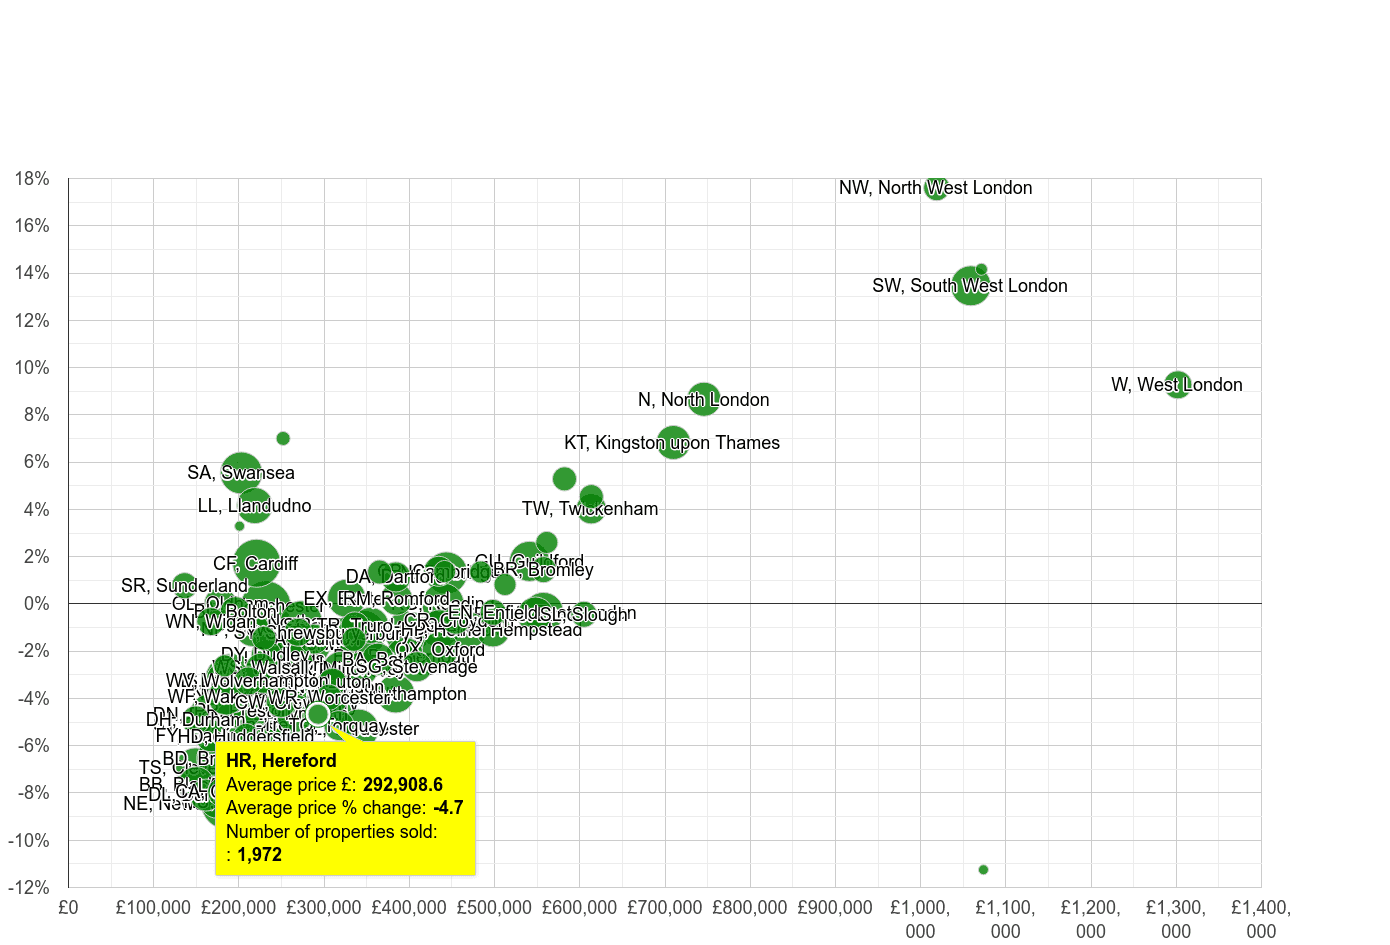 Hereford house prices compared to other areas